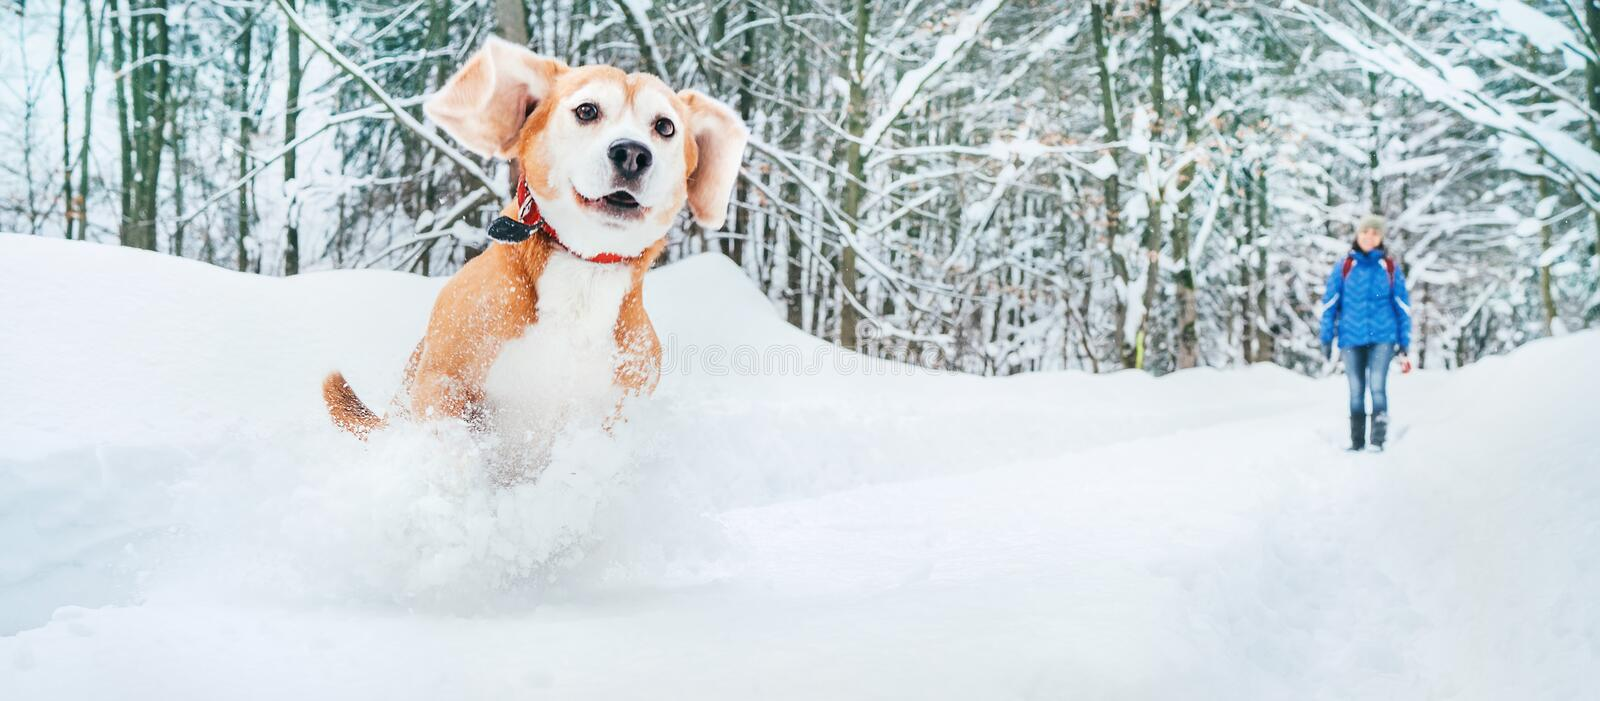 Active beagle dog running in deep snow. Winter walks with pets concept image royalty free stock image